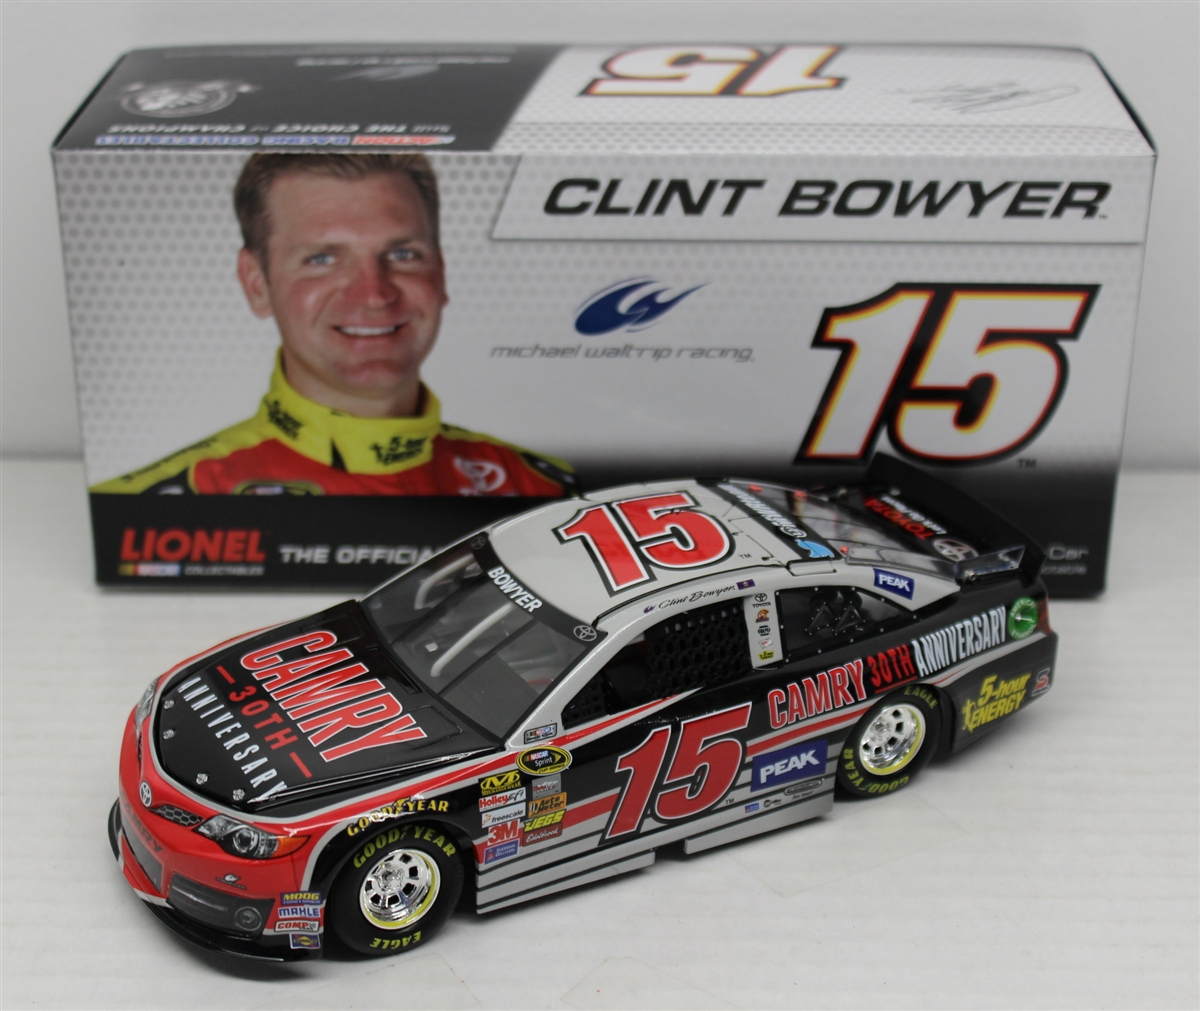 2013 Clint Bowyer Camry's 30th Anniversary ARC